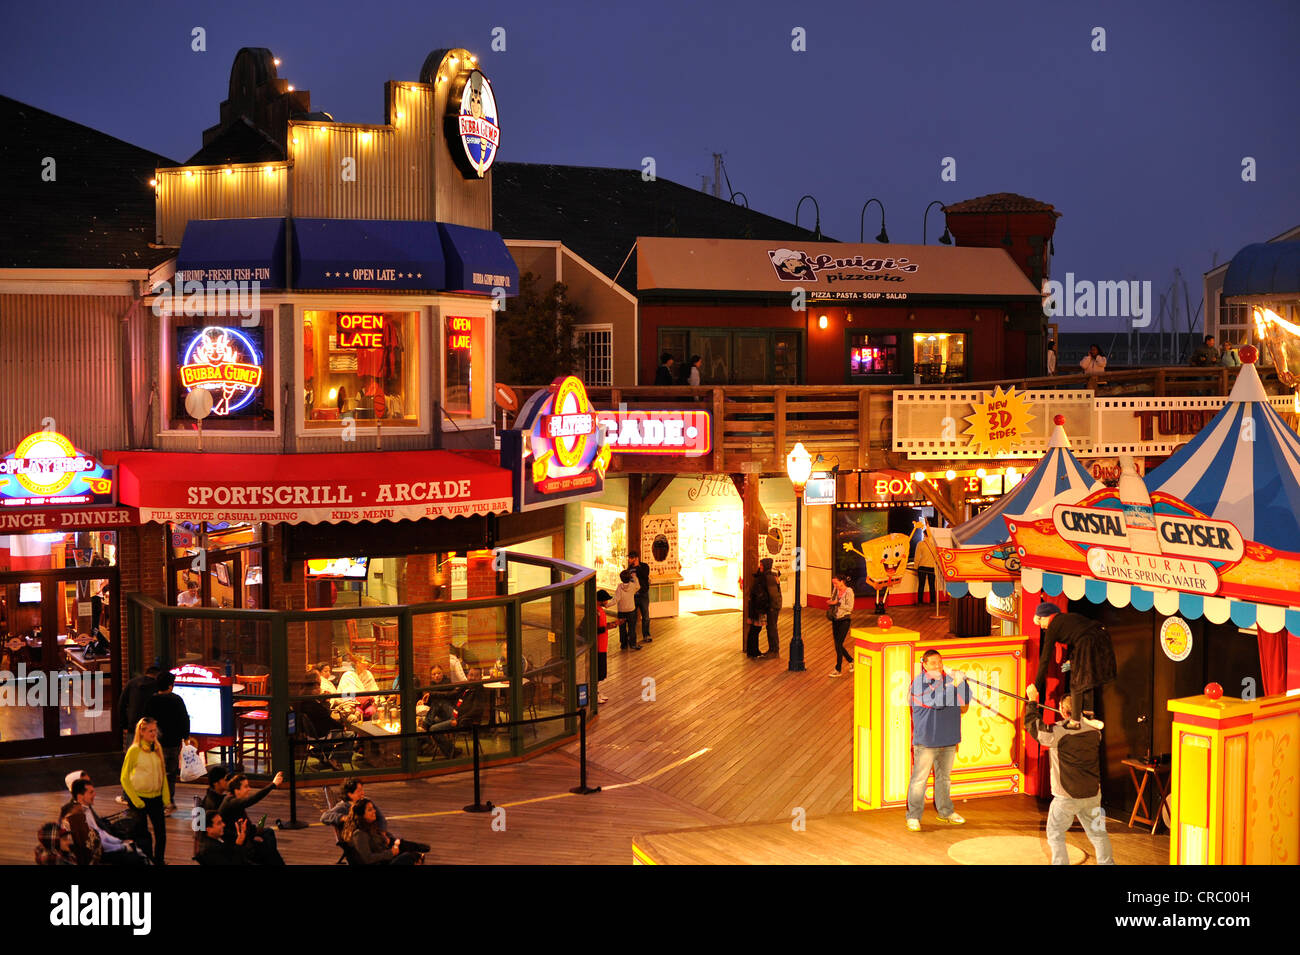 39 Best Images About South Pacific On Pinterest: Bubba Gump Restaurant, Circus, Tourists, Pier 39